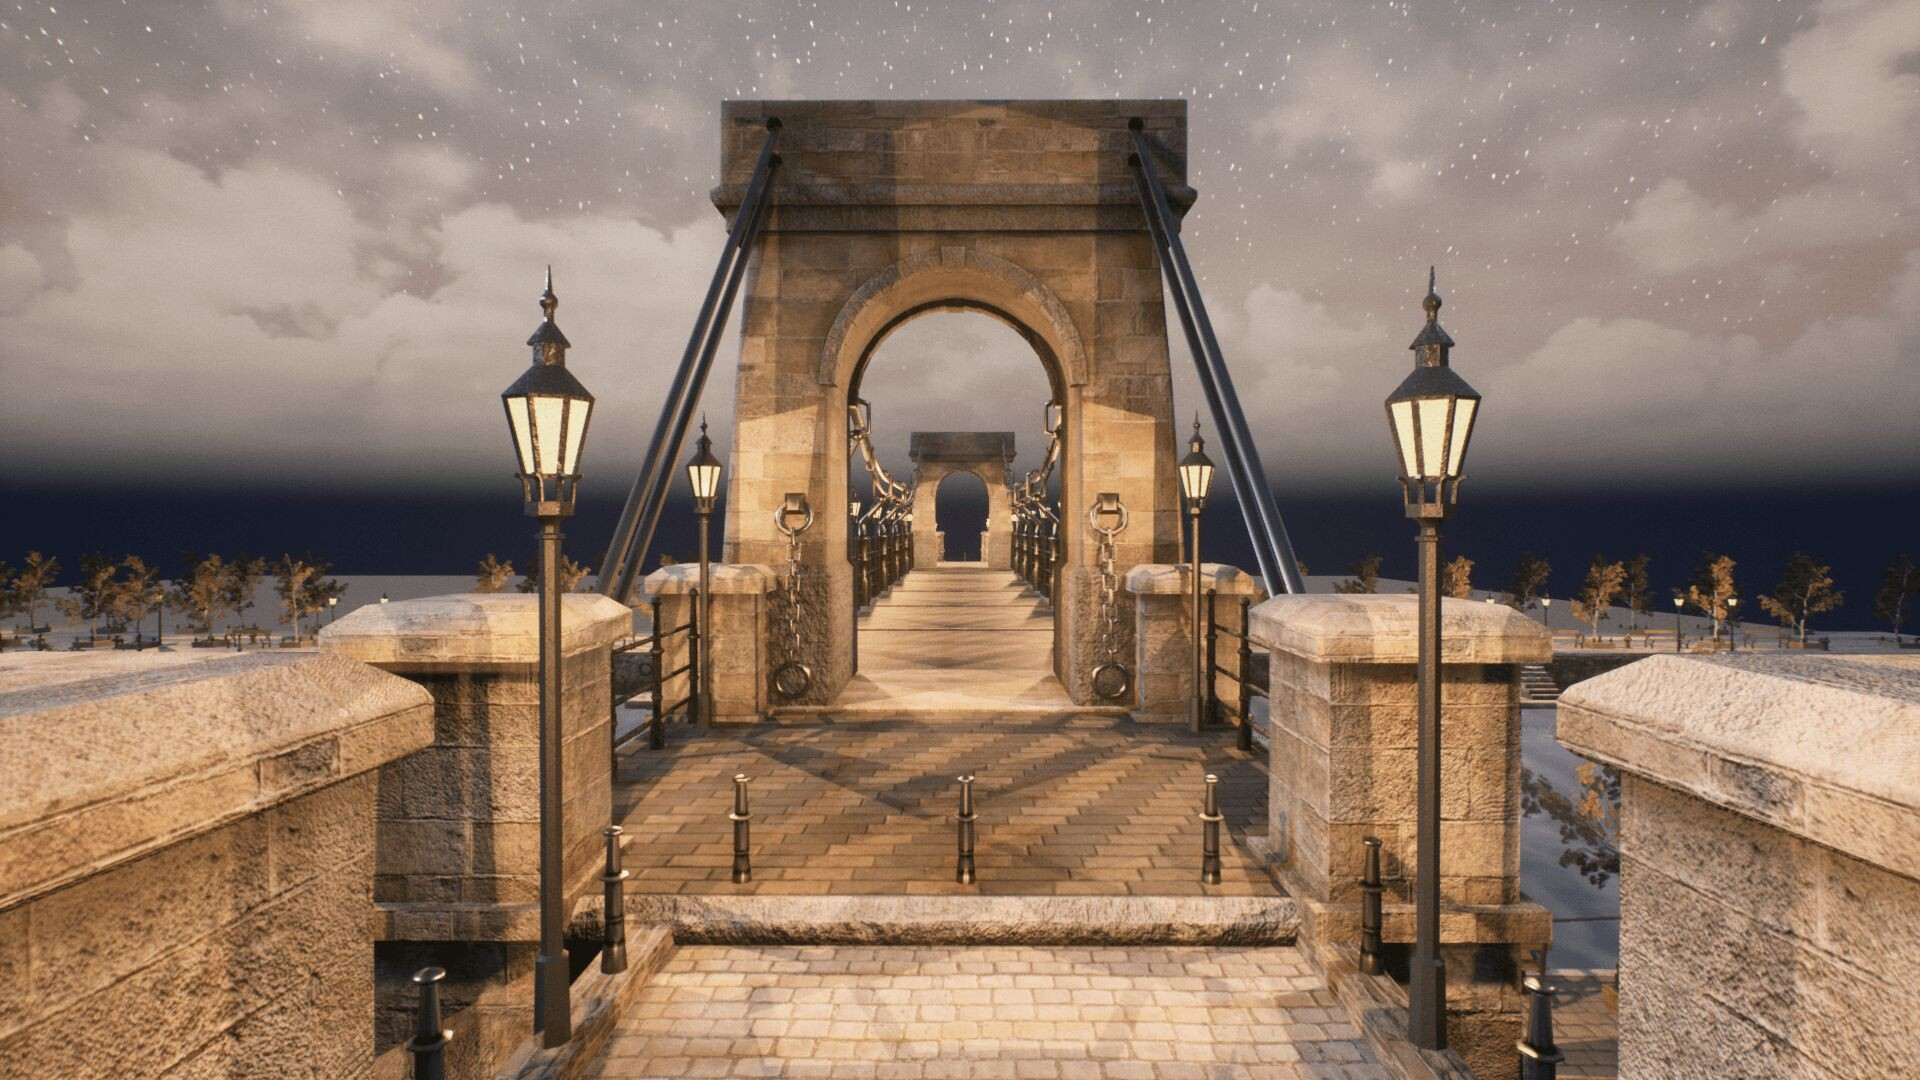 An image showing Bridges asset pack, created with Unreal Engine 4.